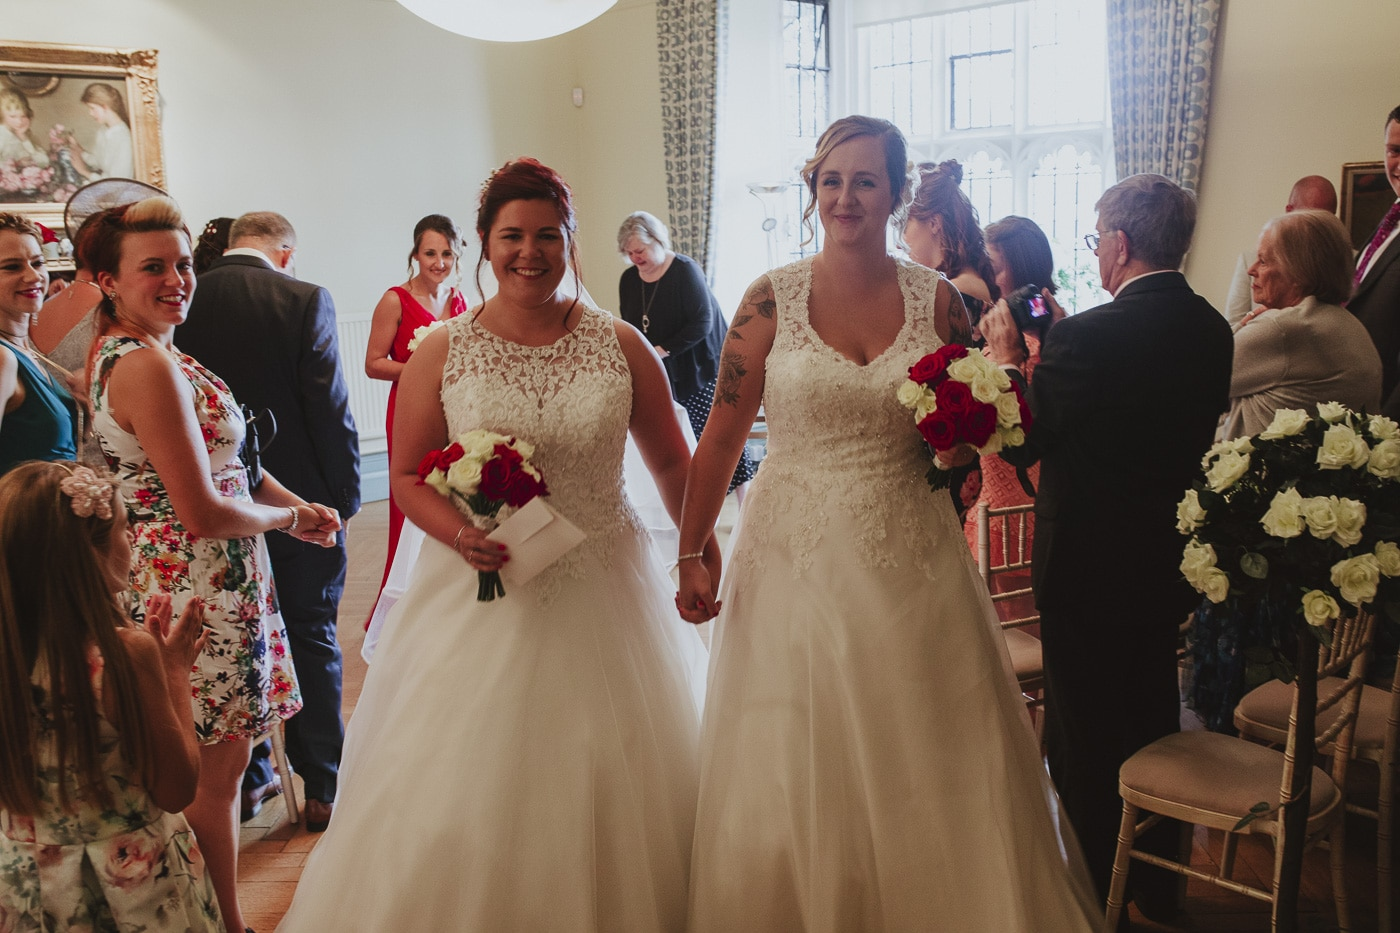 Brides walking down the aisle together for wedding by Joshua Wyborn photography